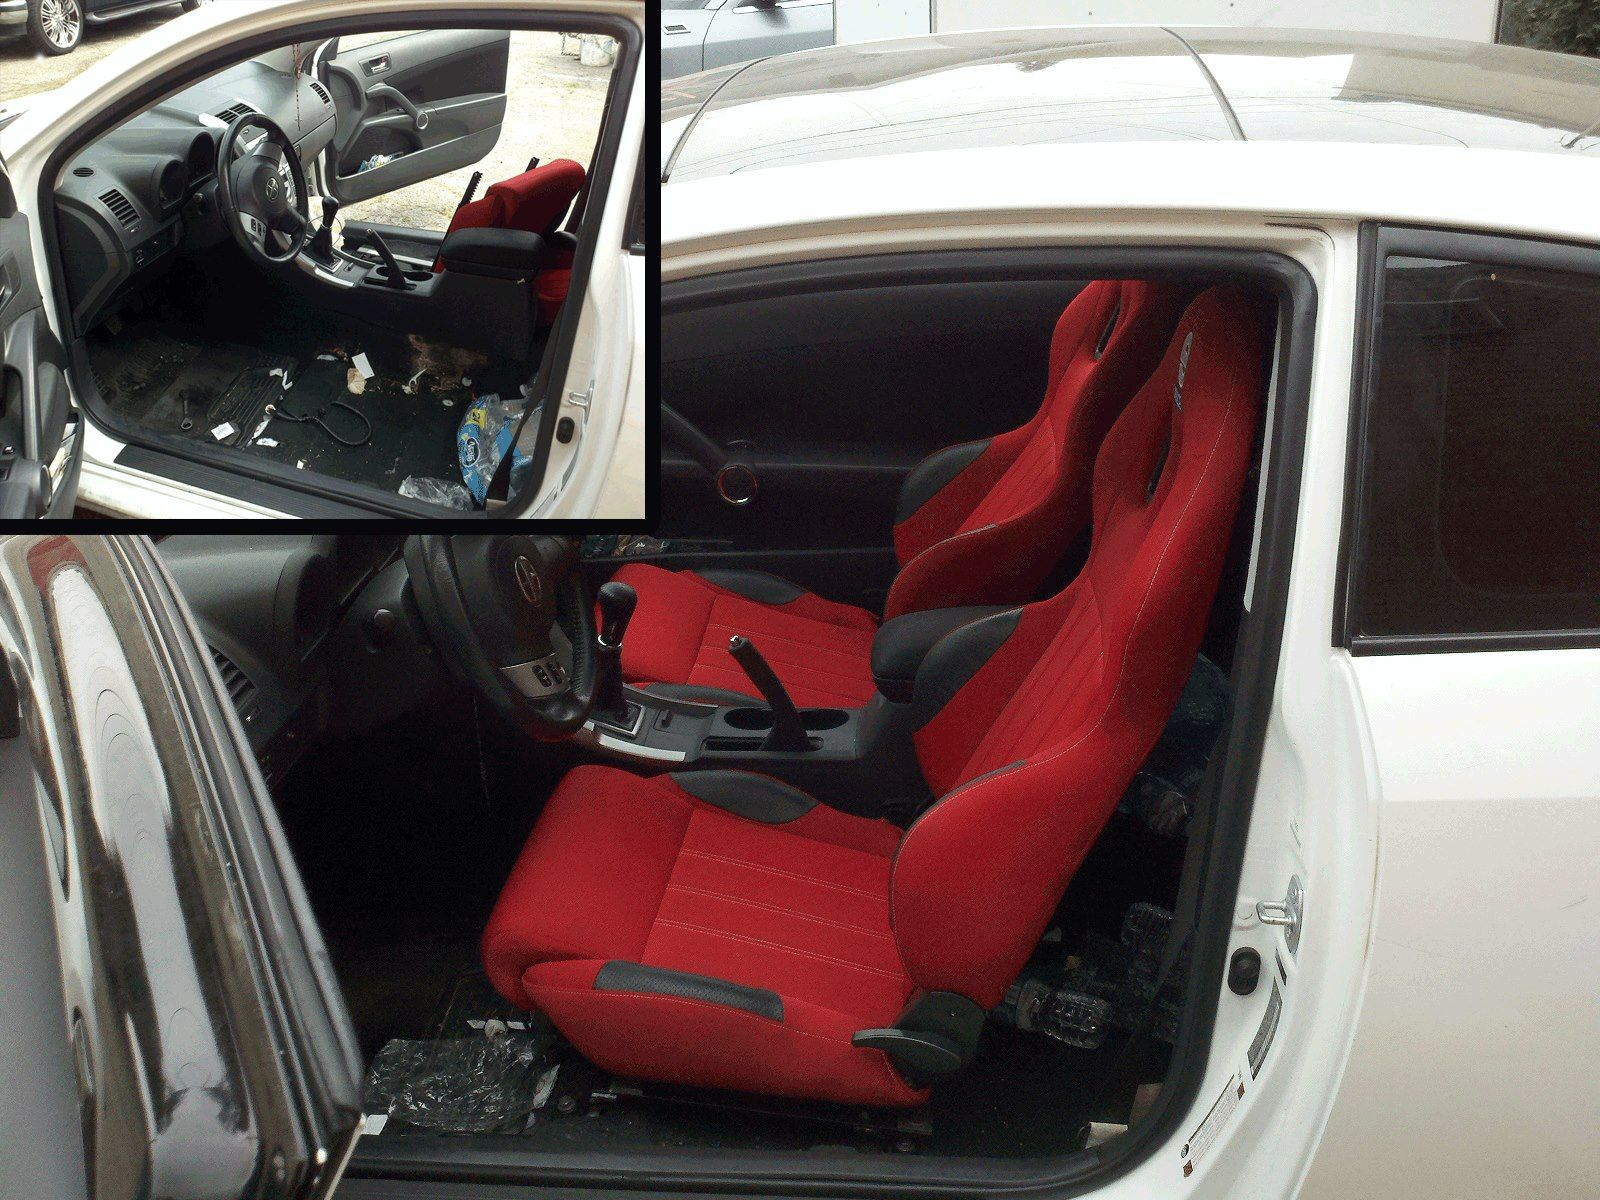 Racing seats installed on a scion tc